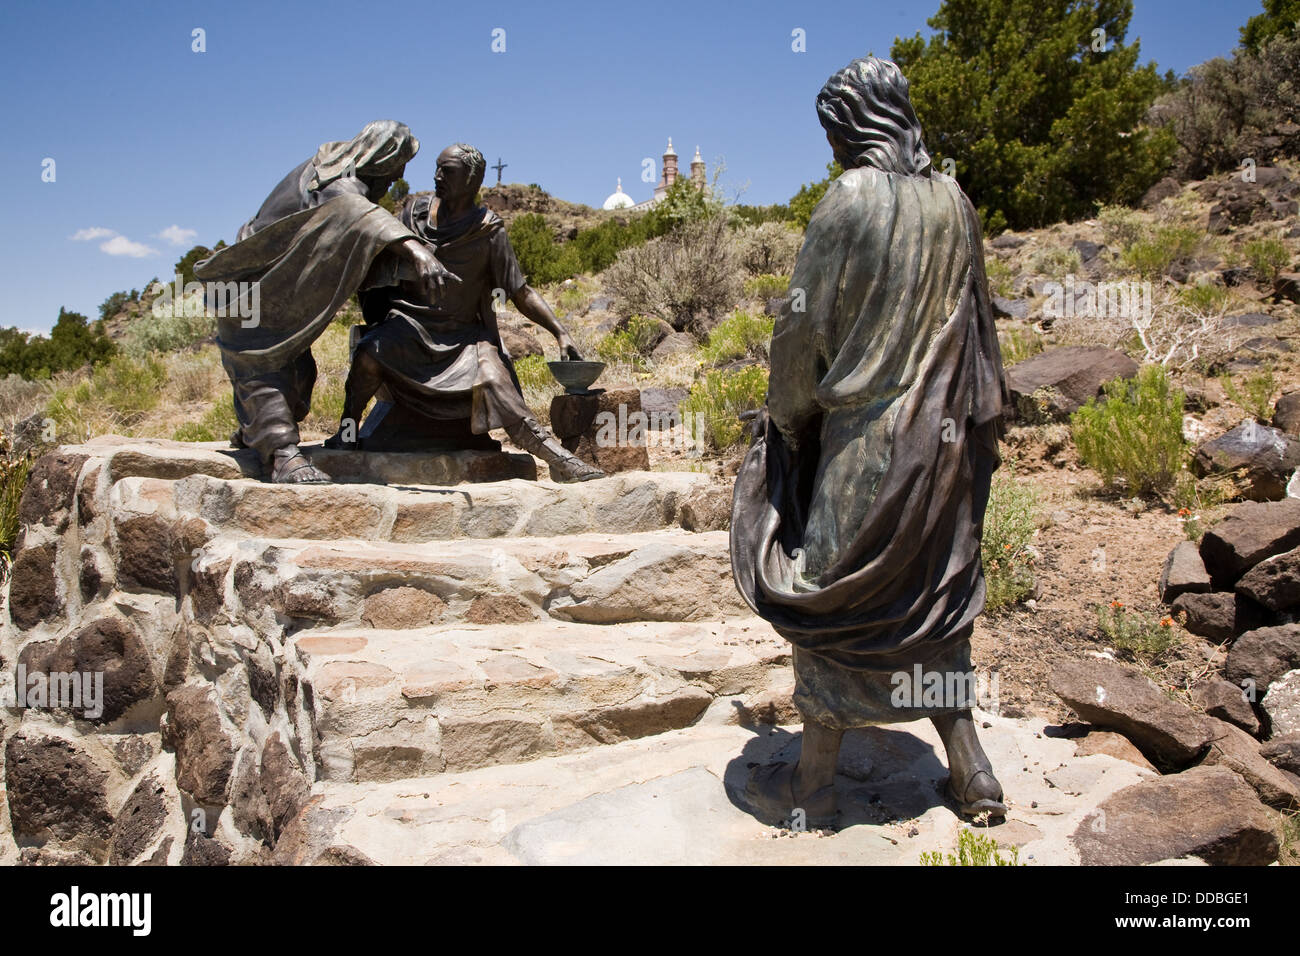 Huberto Maestas sculpture at the Stations of the Cross Shrine in San Luis, CO, USA - Stock Image